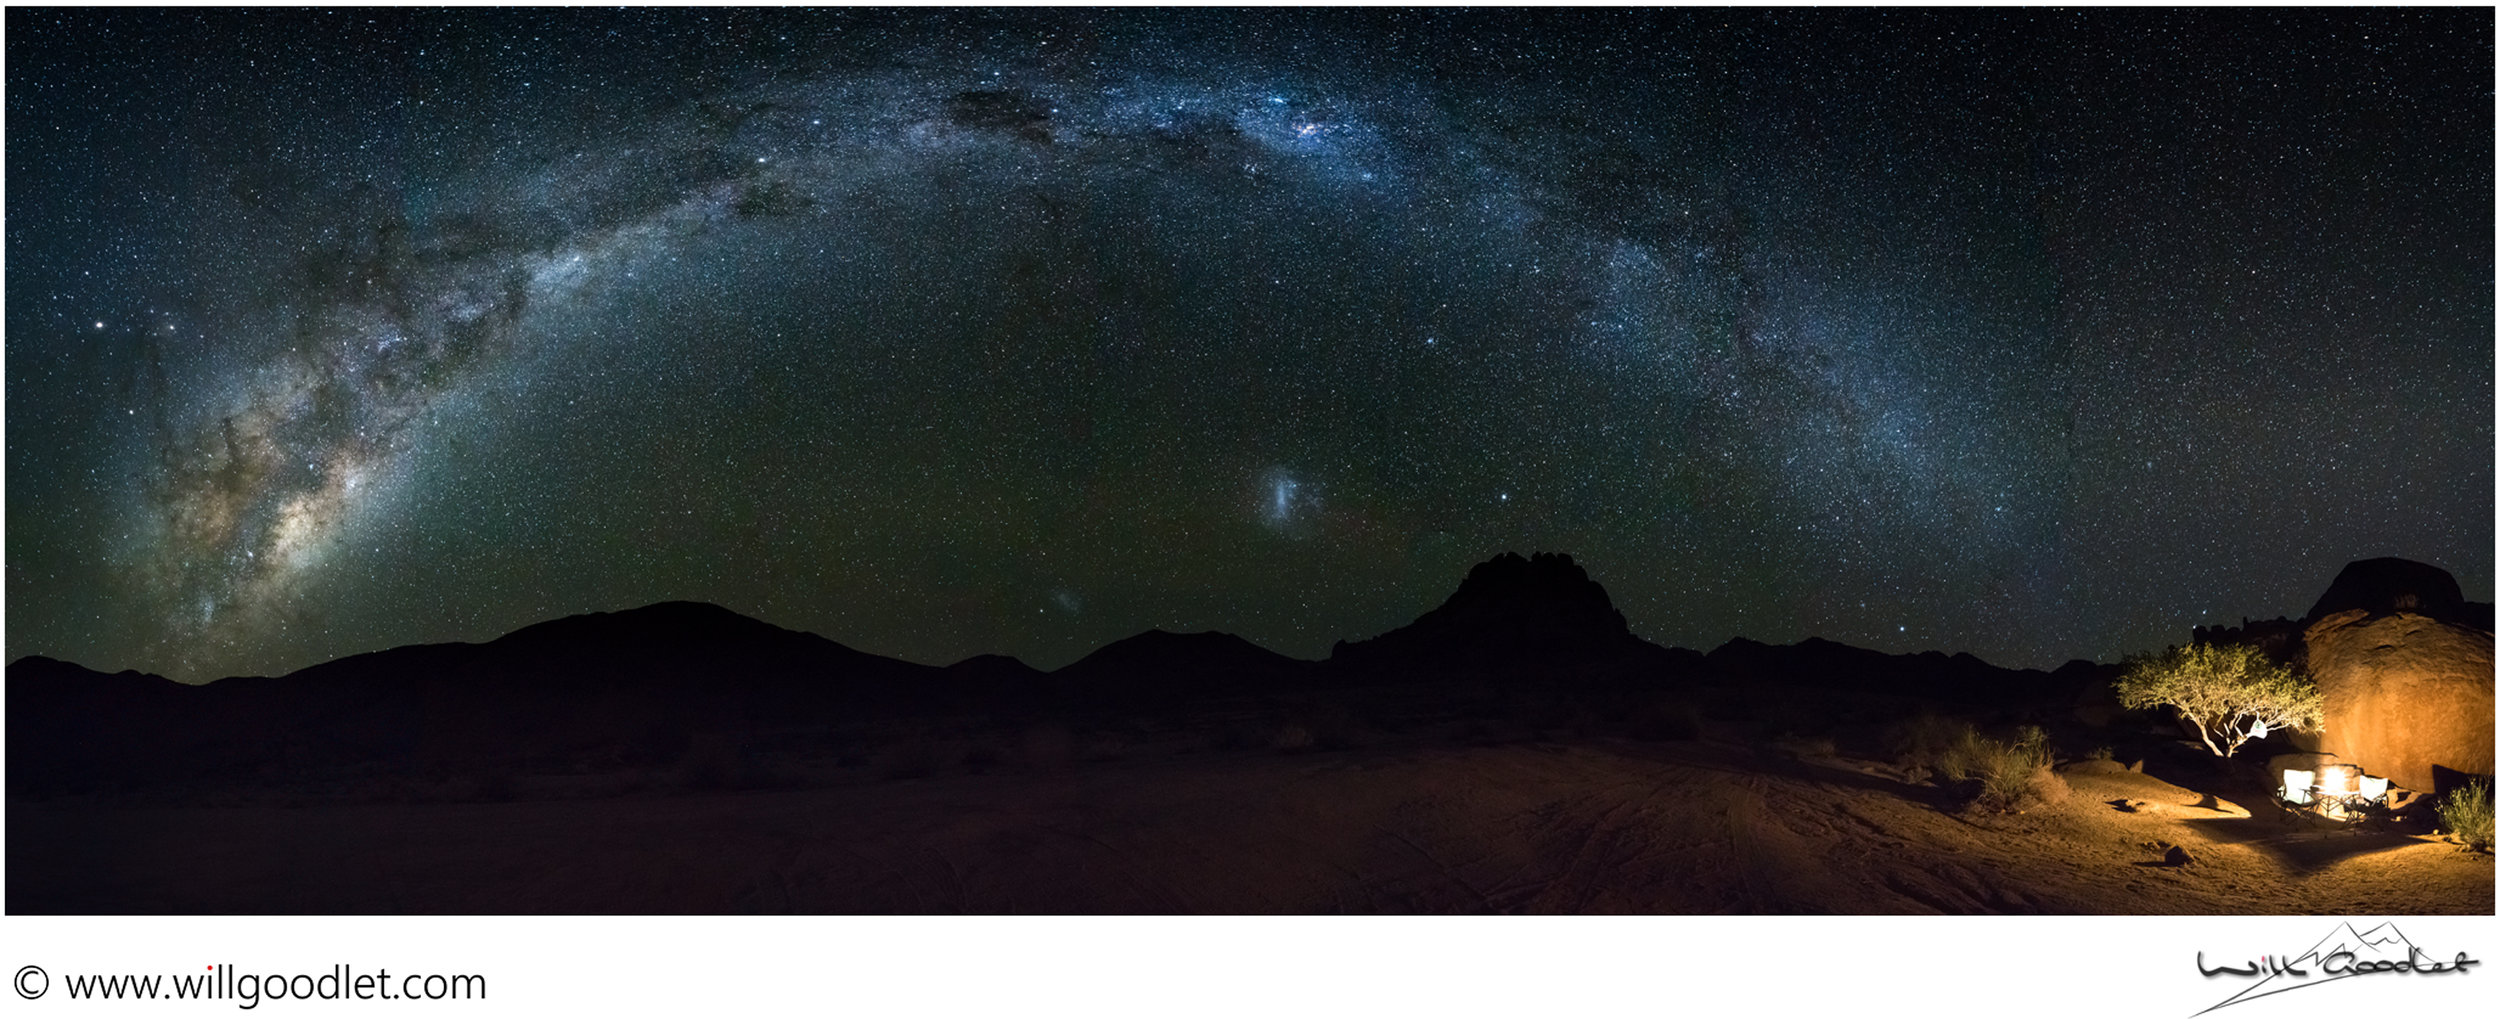 3 rows of 7 images (21 image stitched Panorama) Richtersveld, South Africa.